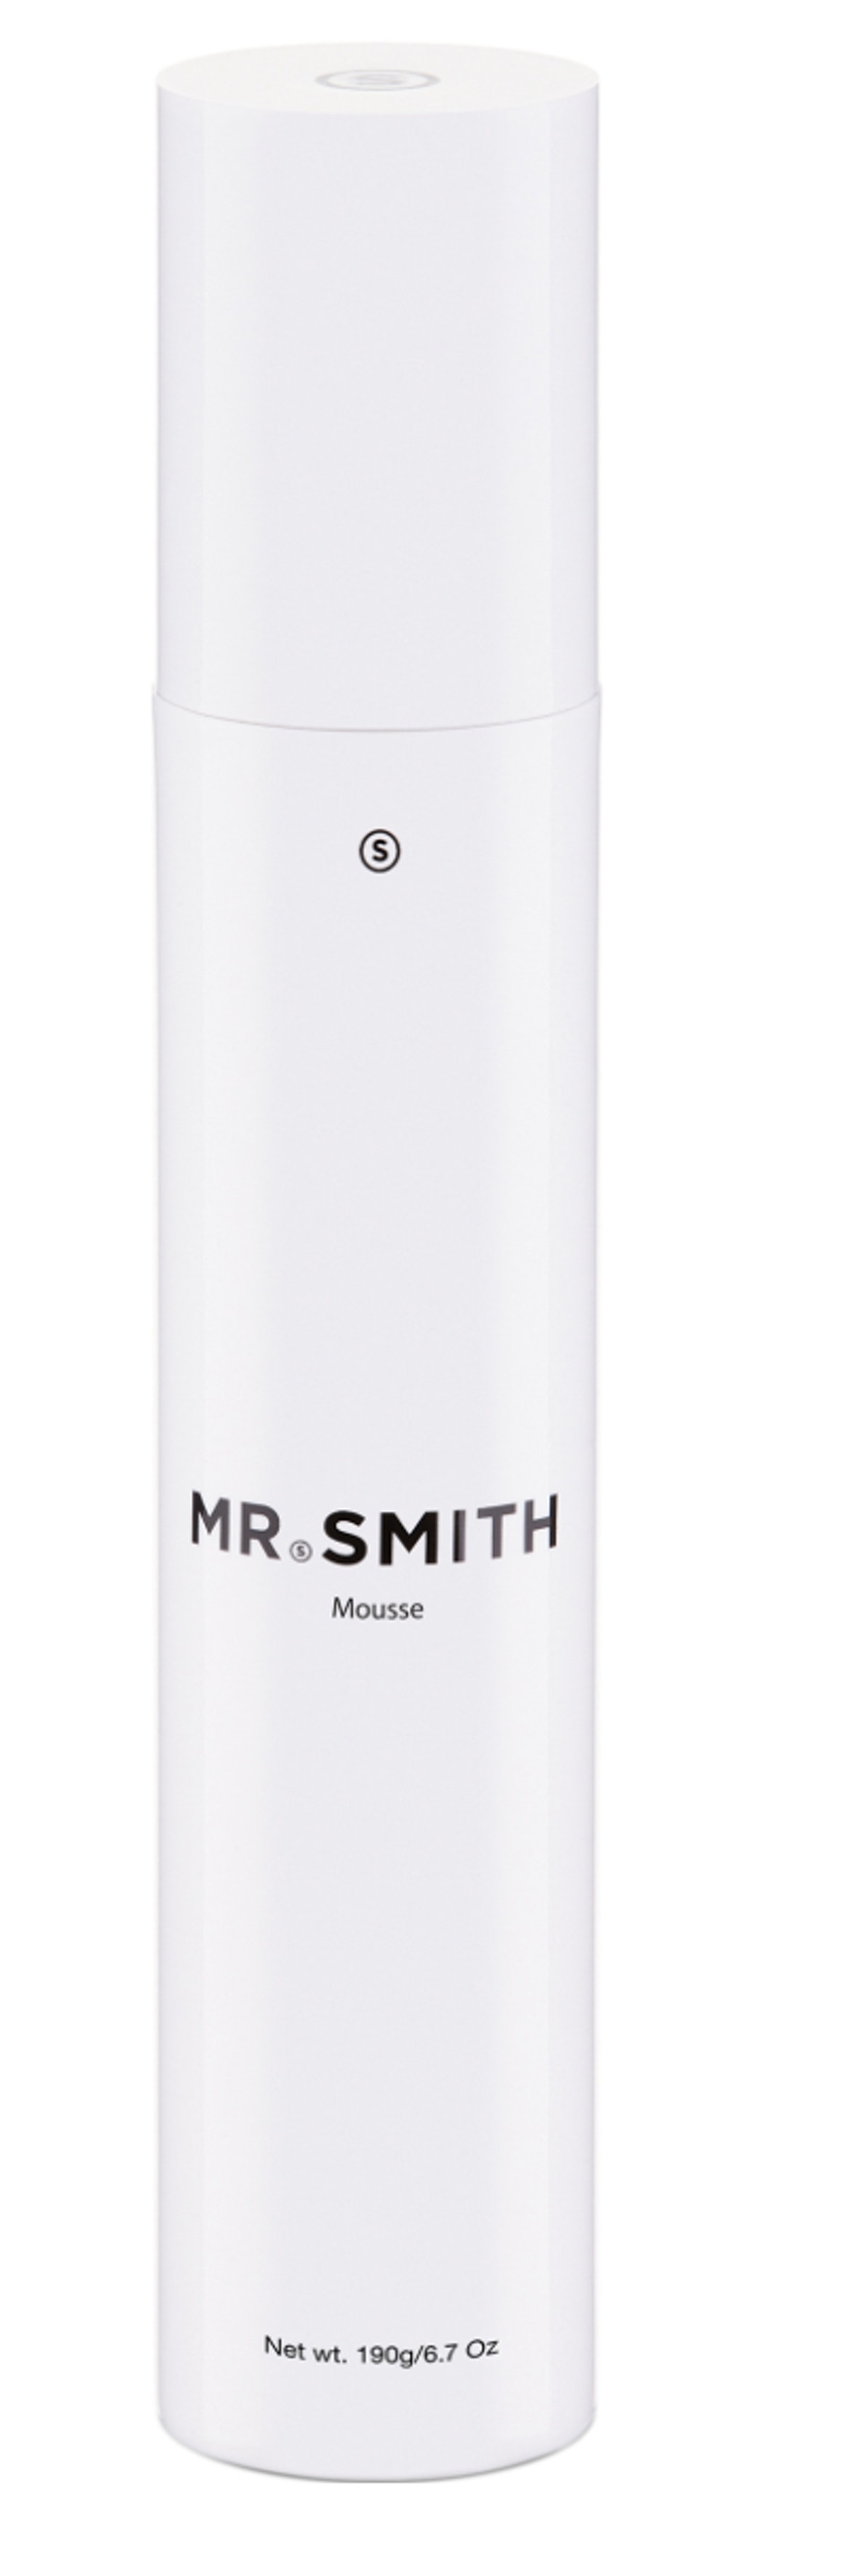 Mr. Smith Mousse